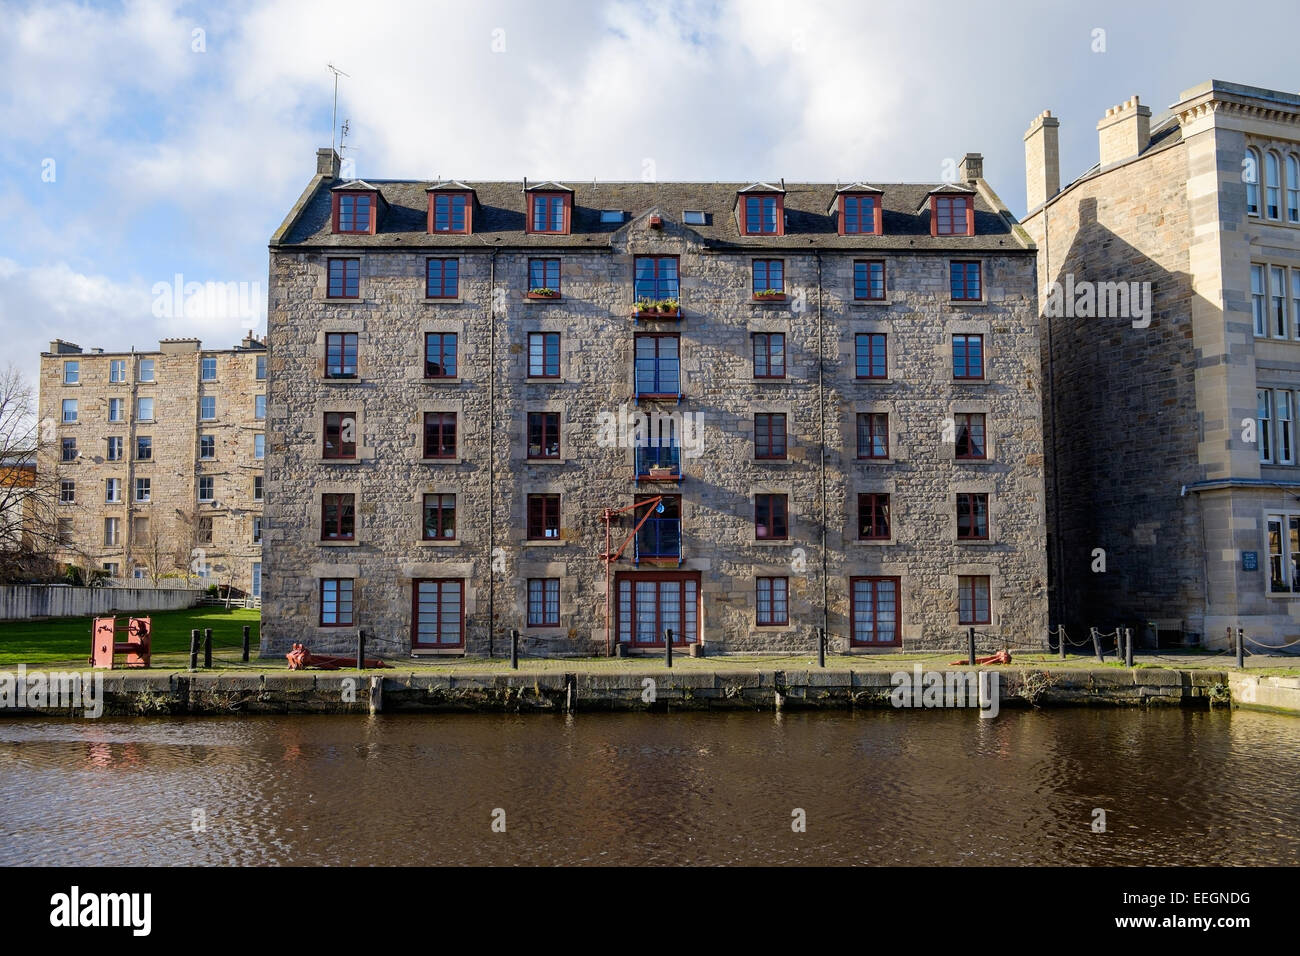 An old warehouse converted to flats in Leith docks, Edinburgh, Scotland. - Stock Image